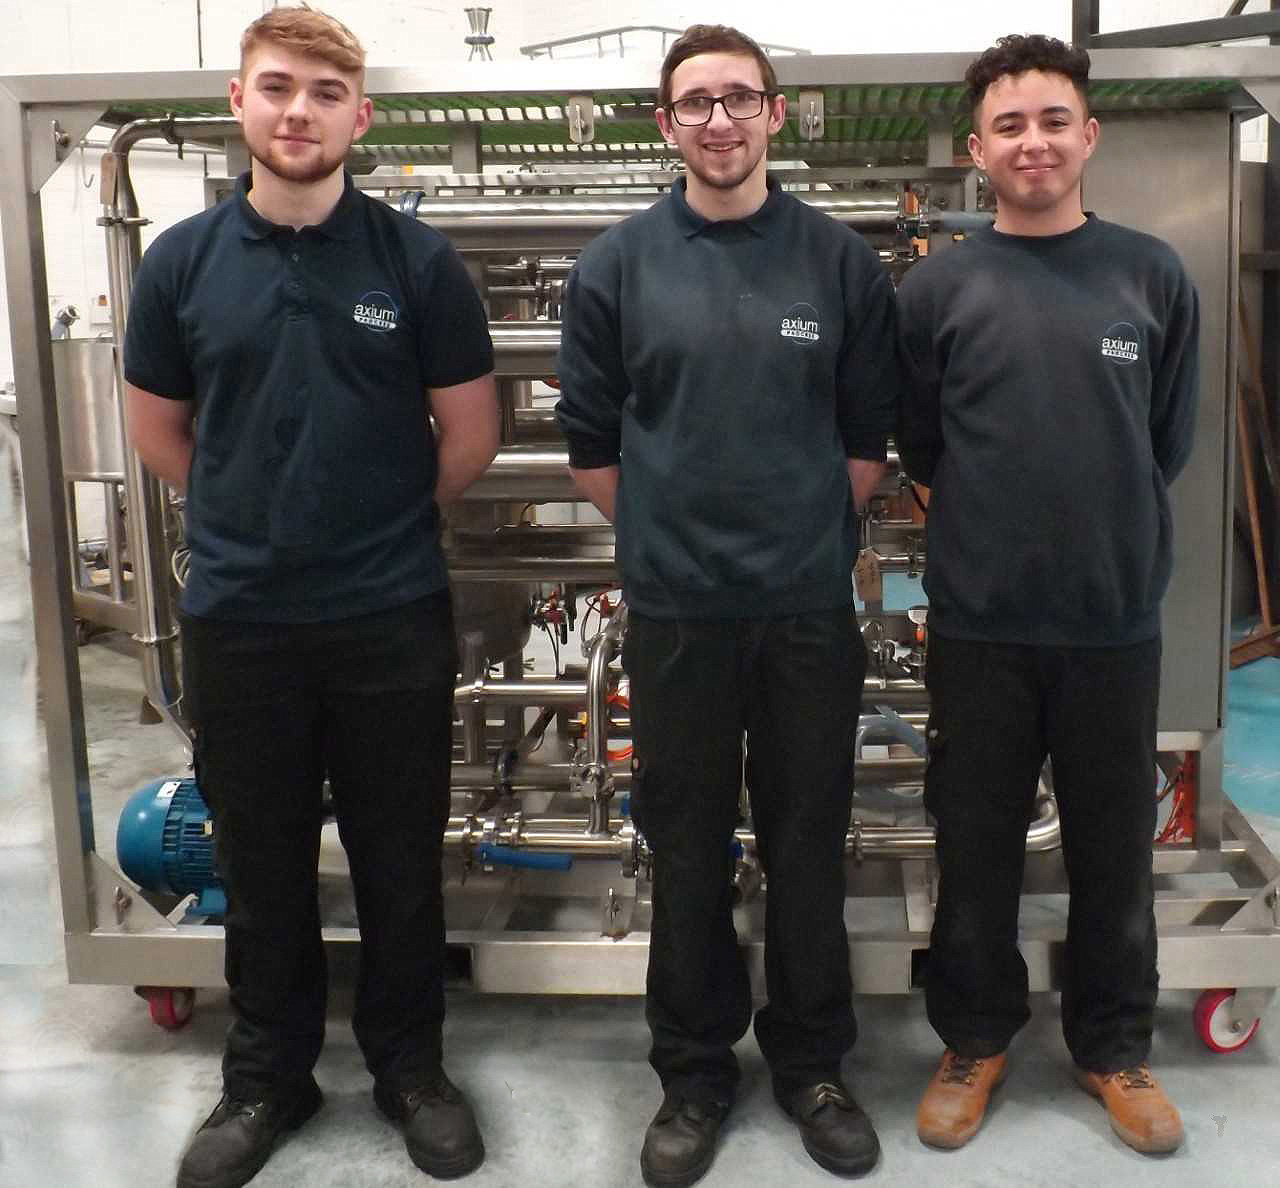 We at Axium Process are very proud of our apprentices who are making a very positive contribution to our company.